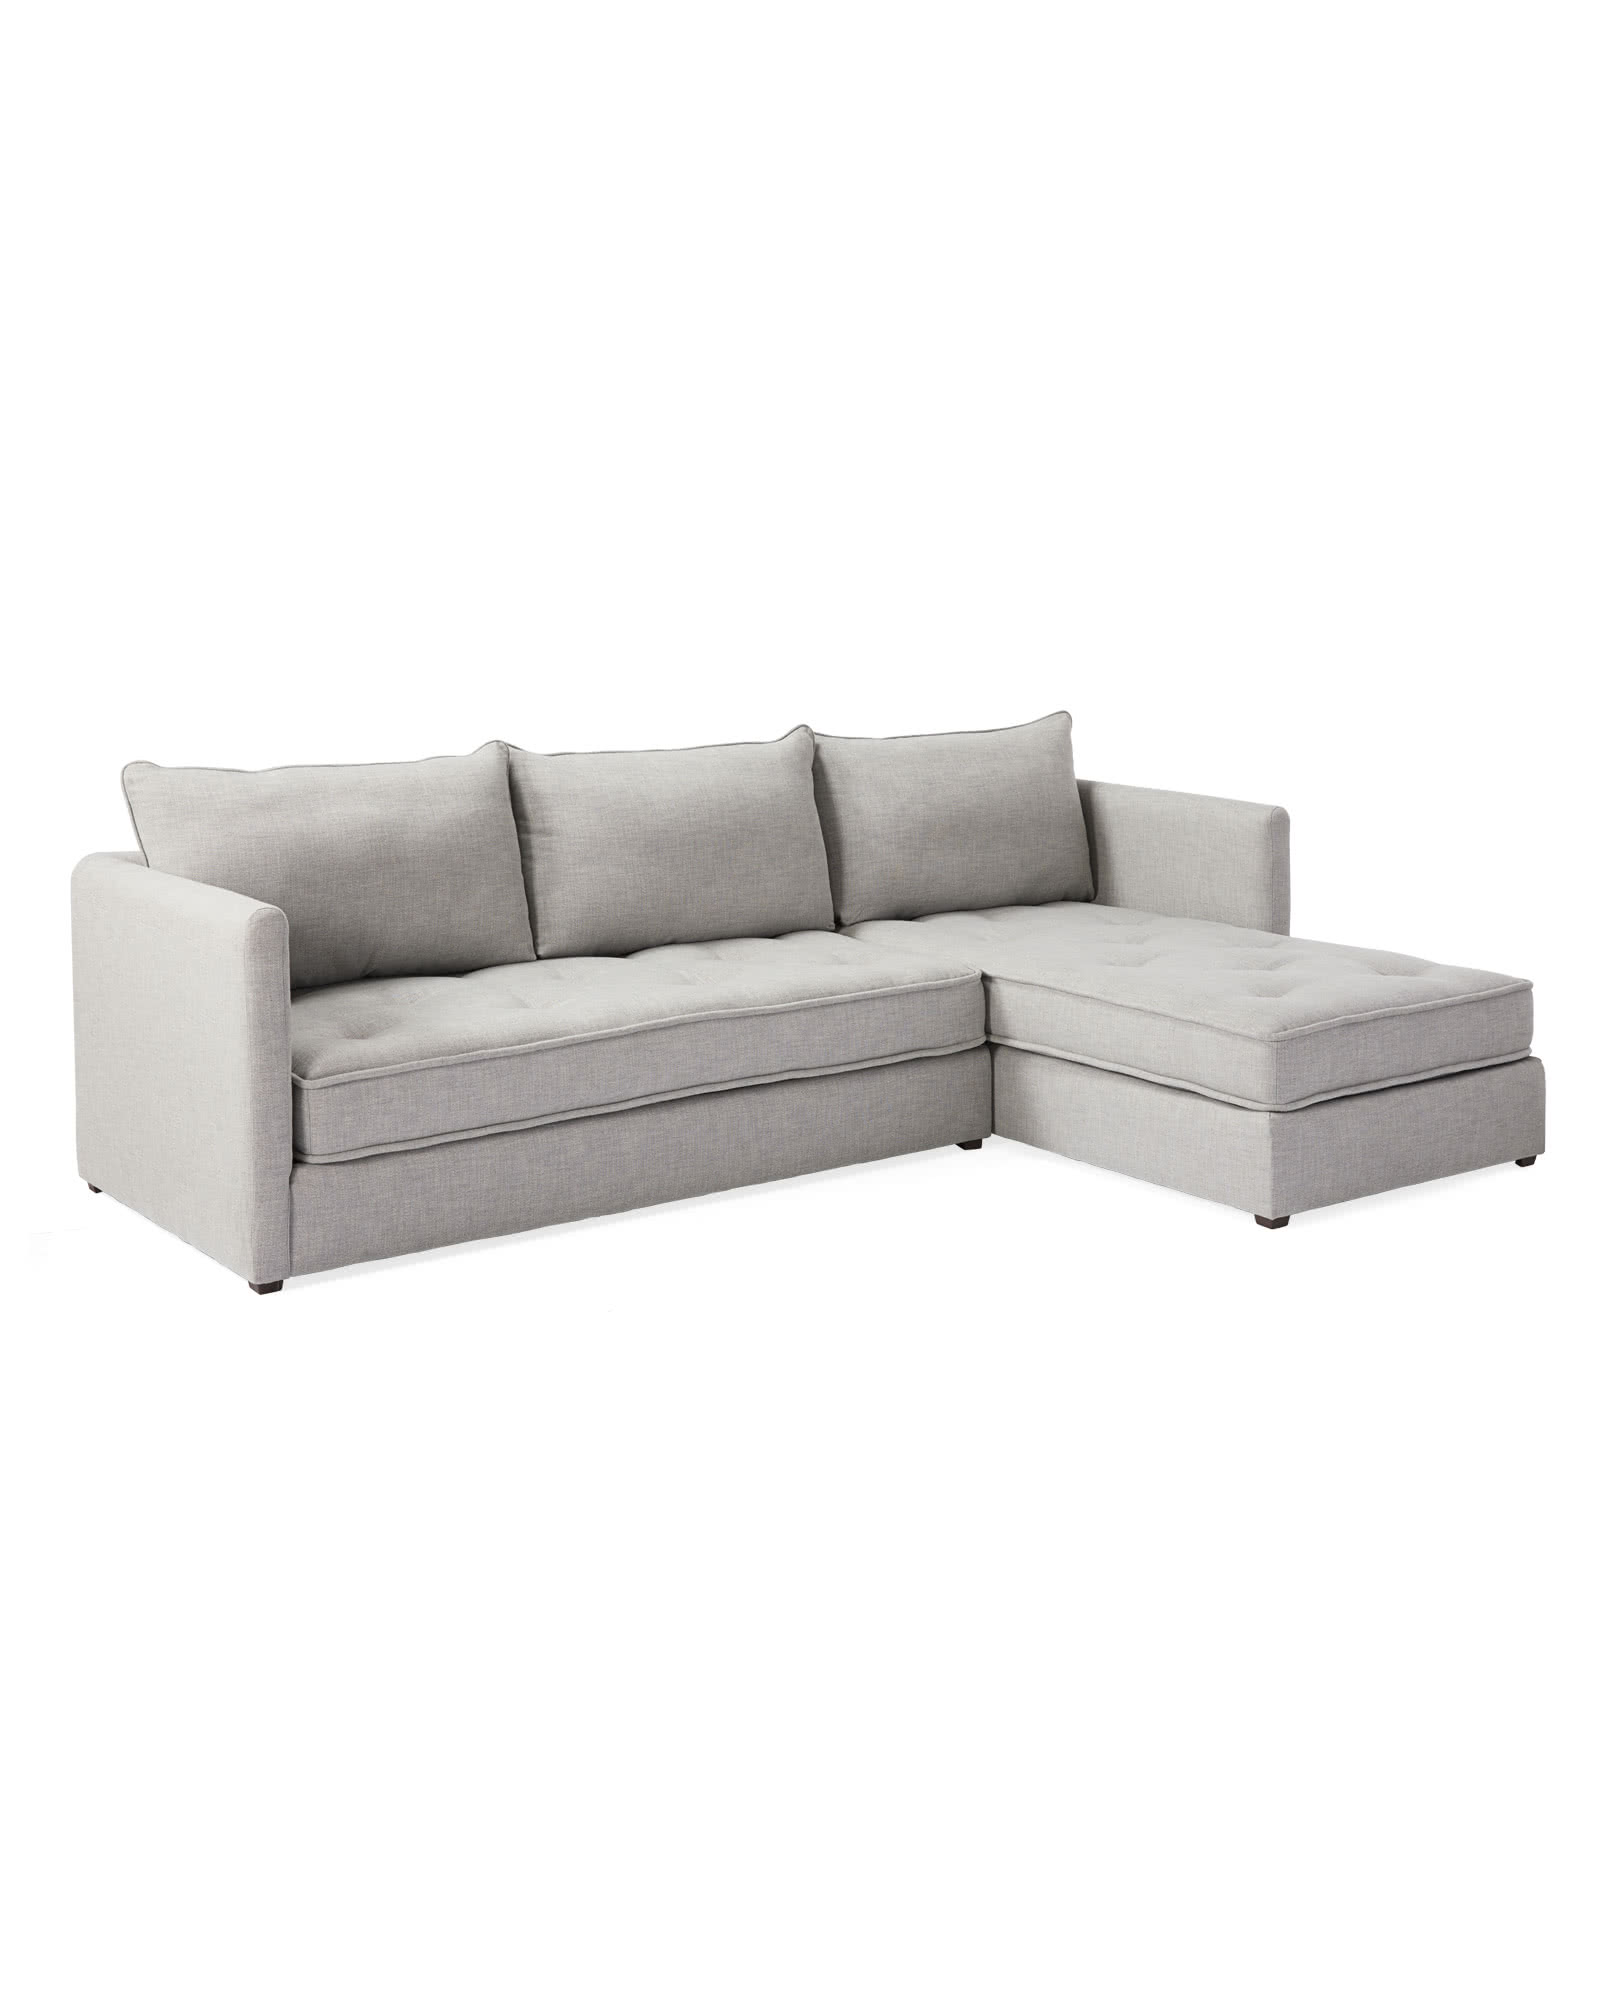 Bennett Chaise Sectional - Right-Facing,